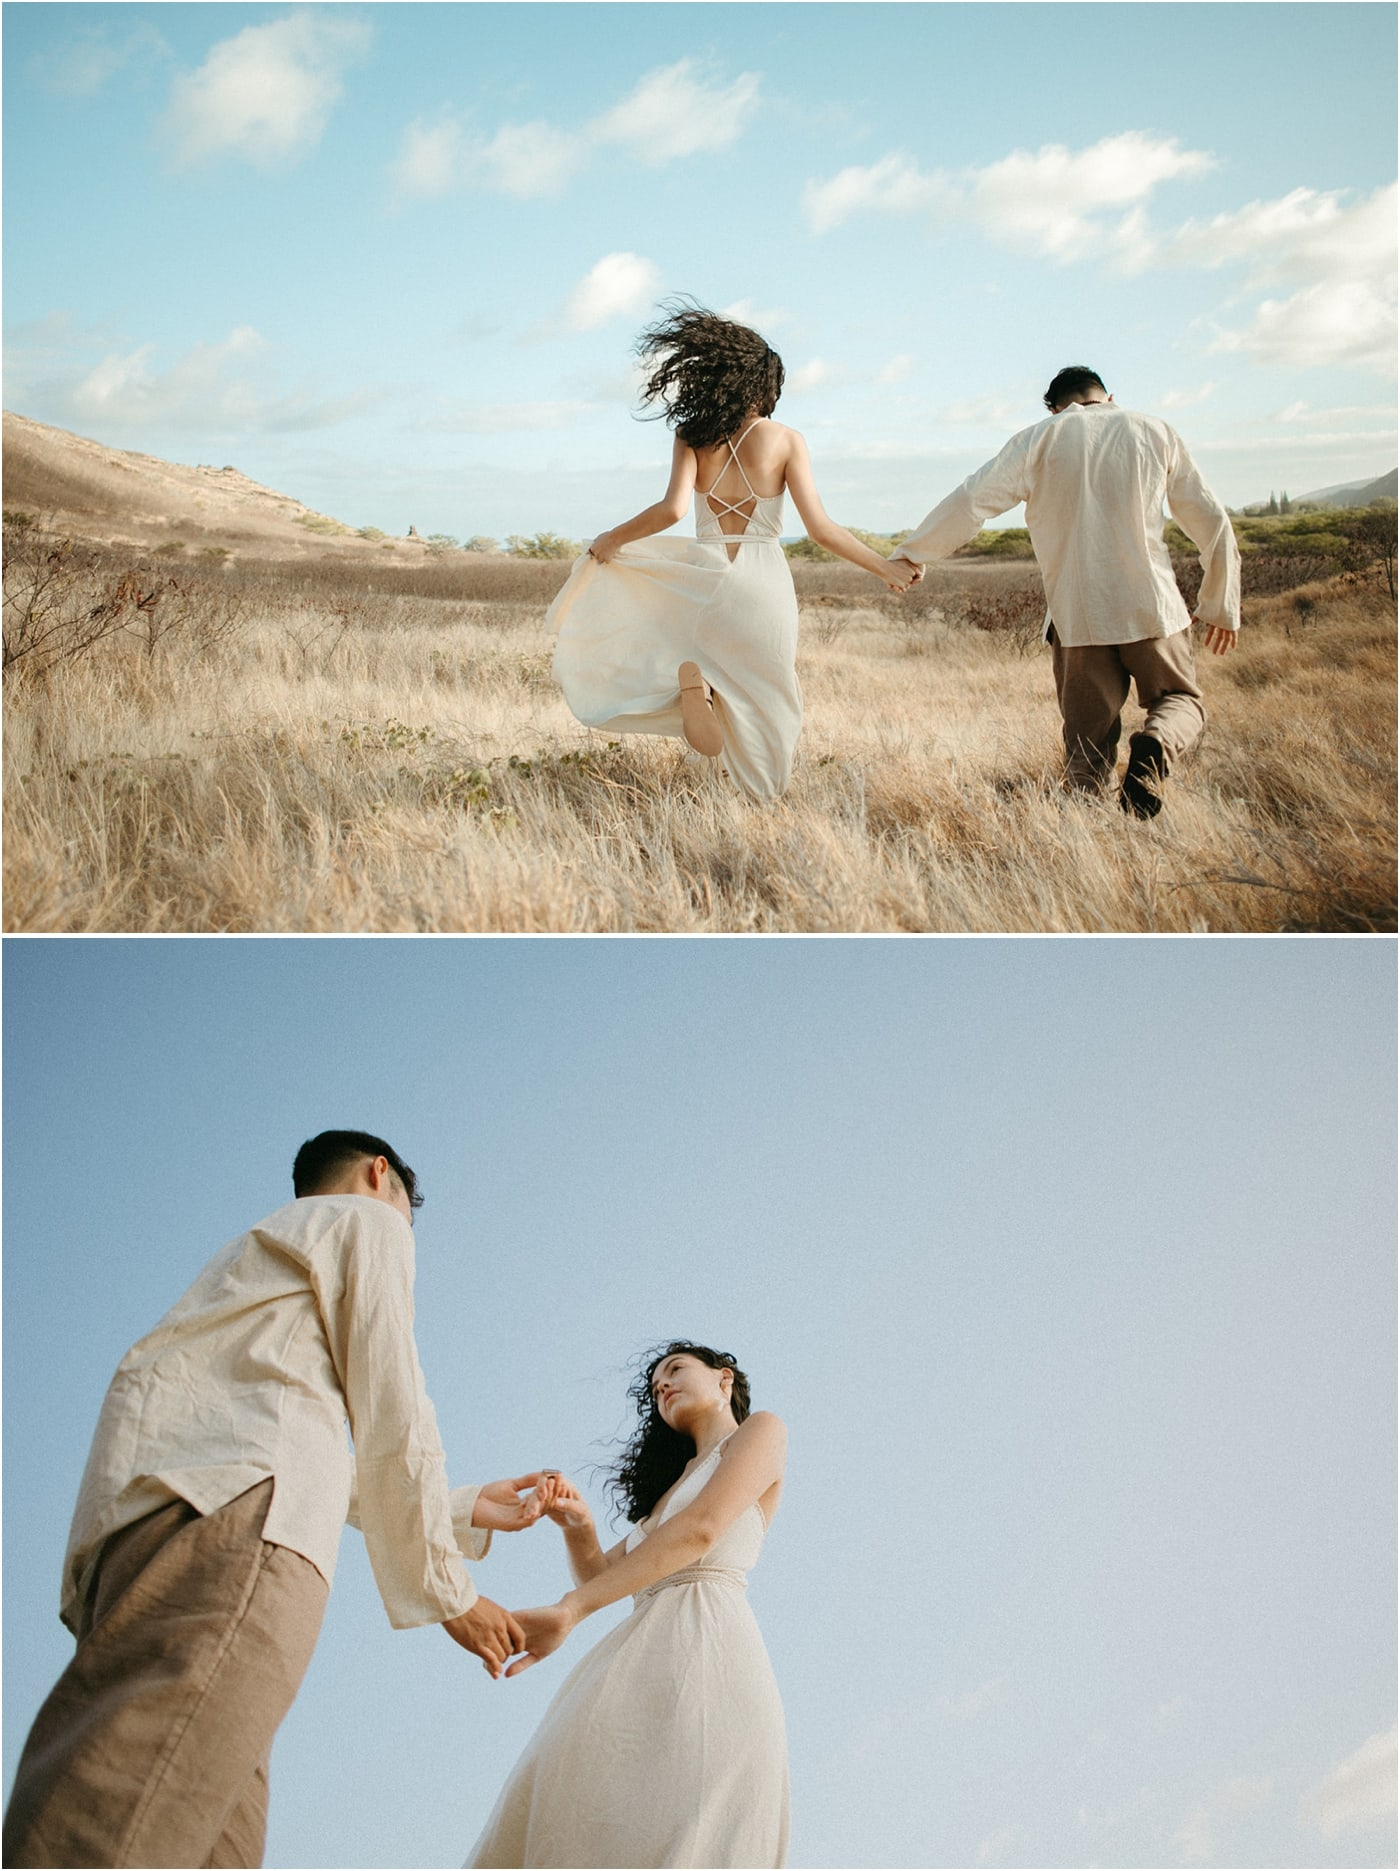 Adventure elopement photography by Emily Choy